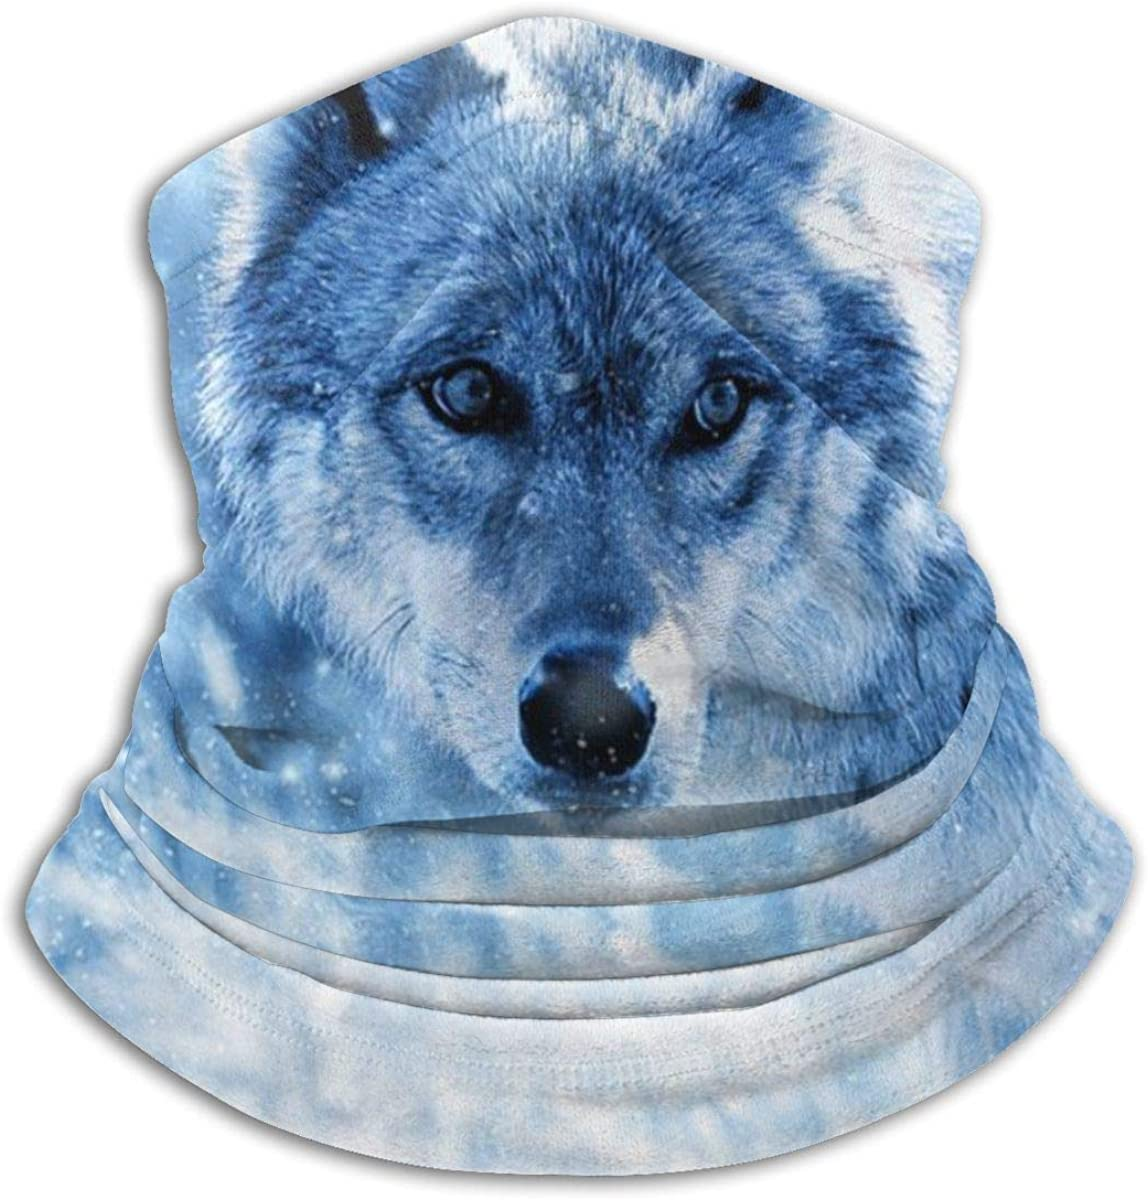 Animal Wolf Snow Art Neck Gaiter Headwear Headband Head Wrap Scarf Mask Neck/Ear Warmers Headbands Perfect For Winter Fishing, Hiking, Running, Motorcycle Etc& Daily Wear For Men And Women